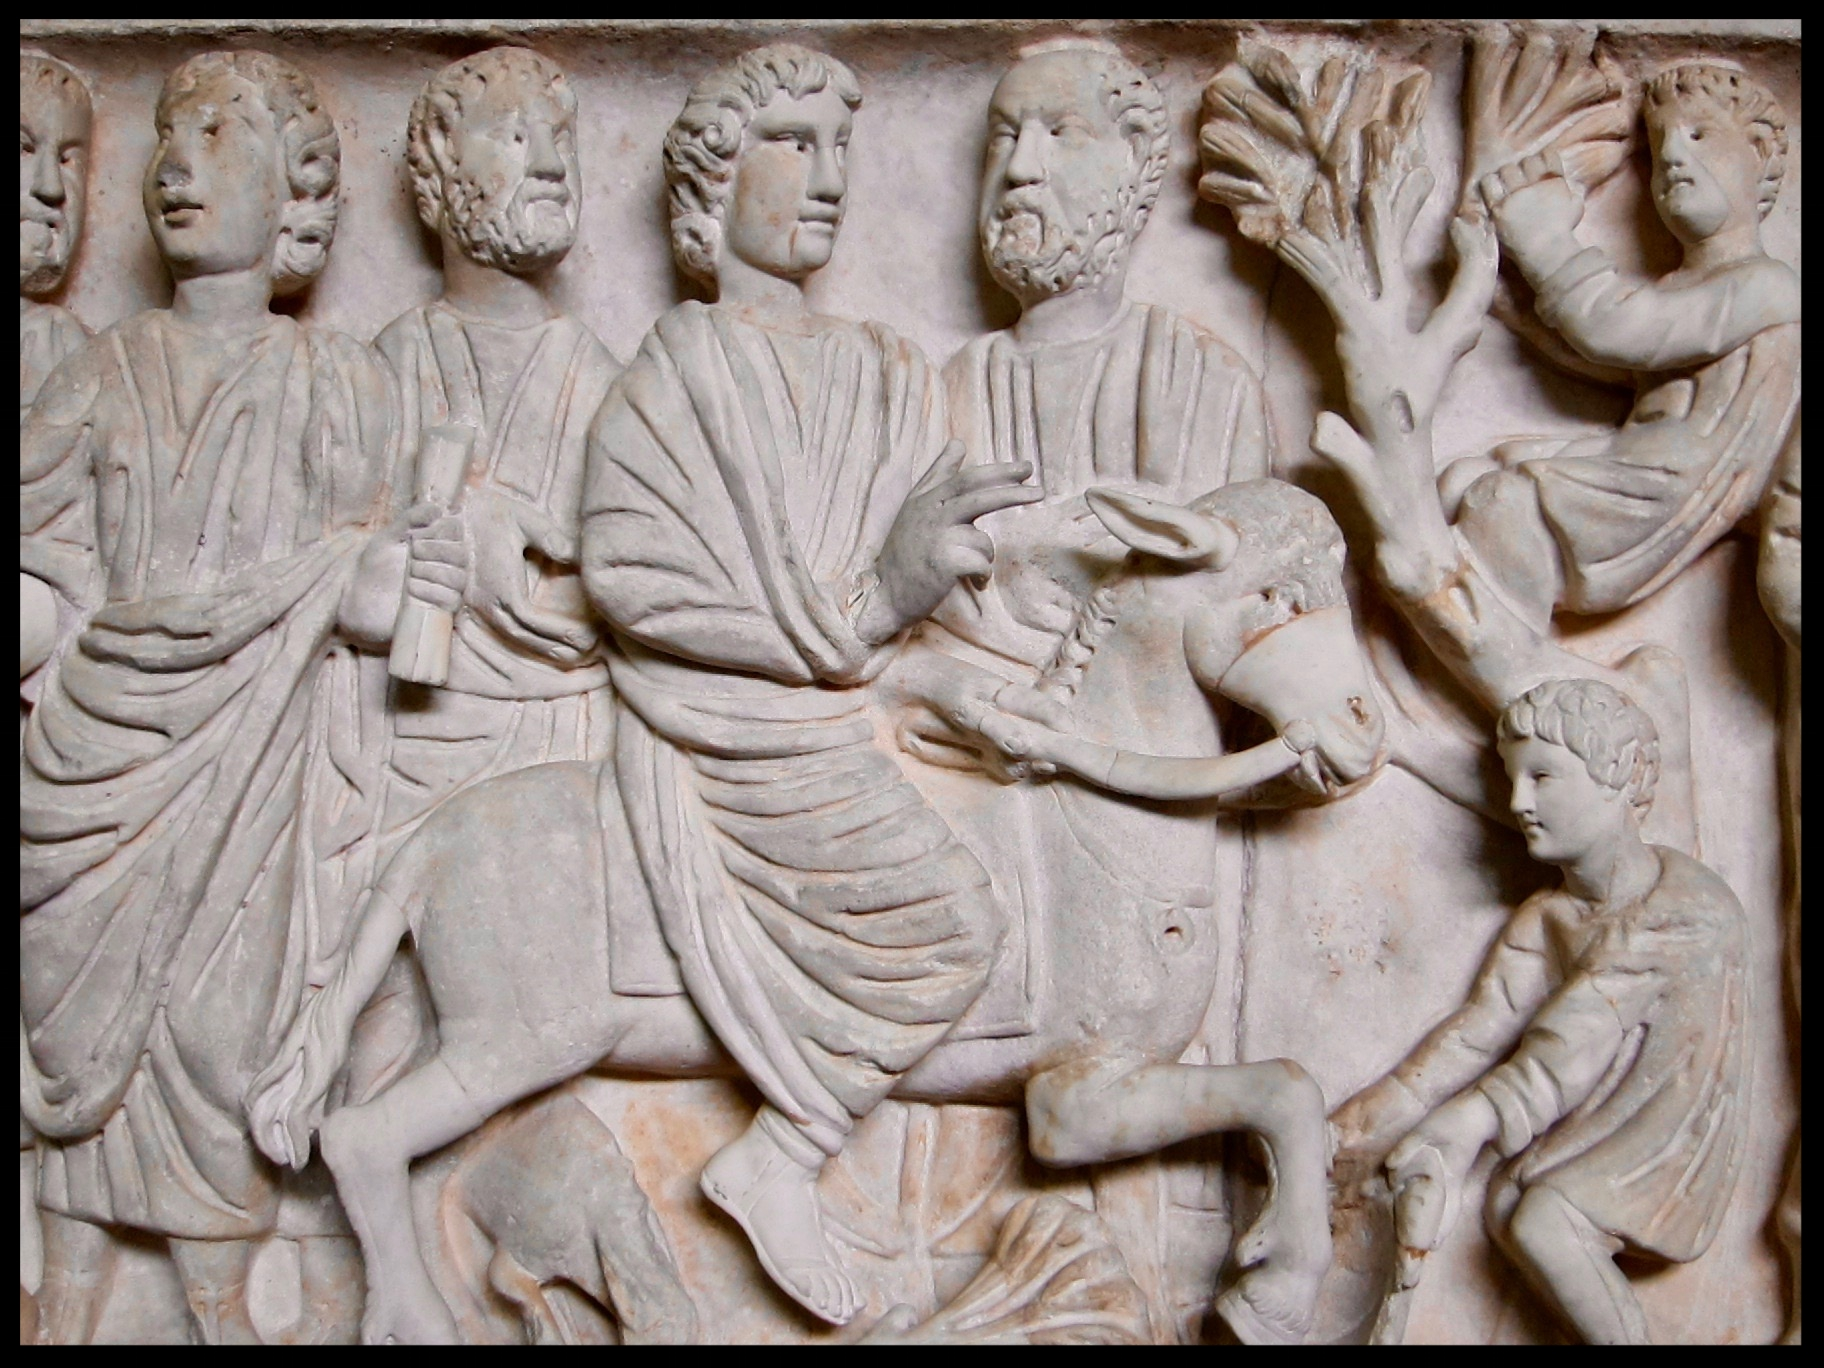 Christian sarcophagus freize depicting the Lord's entry into Jerusalem on Palm Sunday - Rome c 4th century